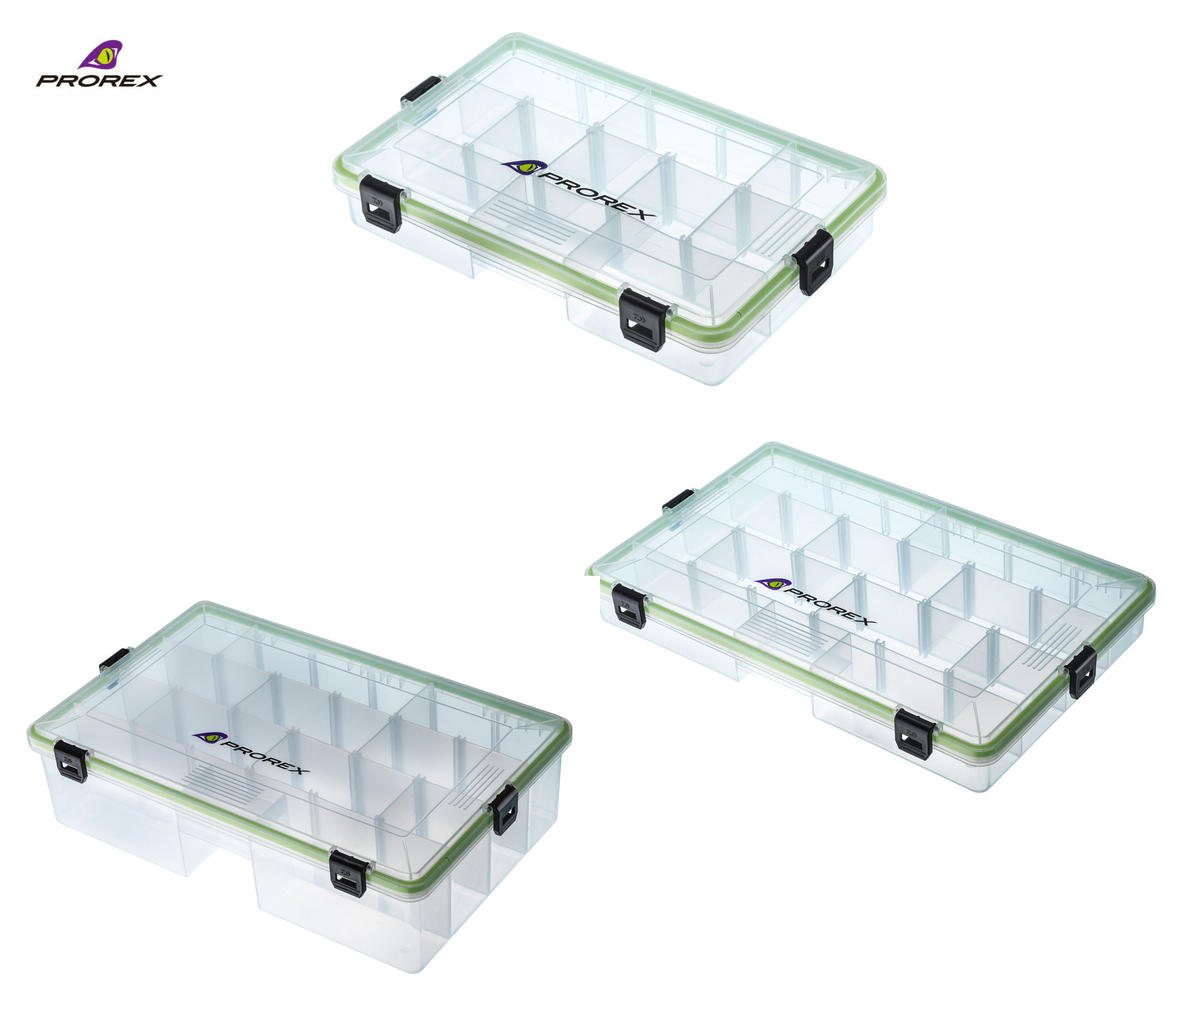 New Daiwa Prorex Sealed Tackle / Lure Box - Pike / Predator - All Sizes